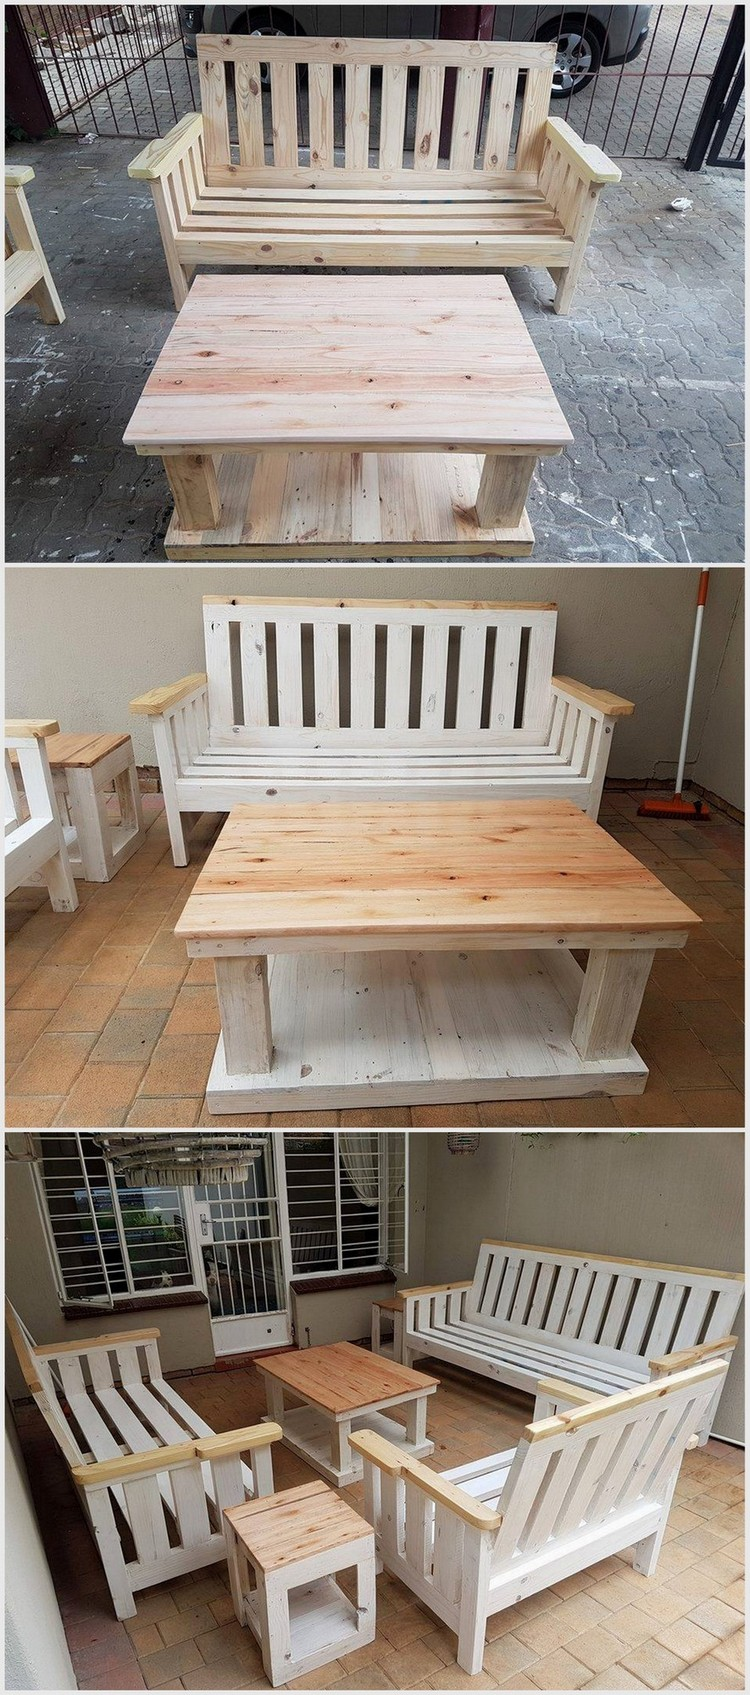 Excellent ideas with used wood pallets pallet wood projects Pallet ideas